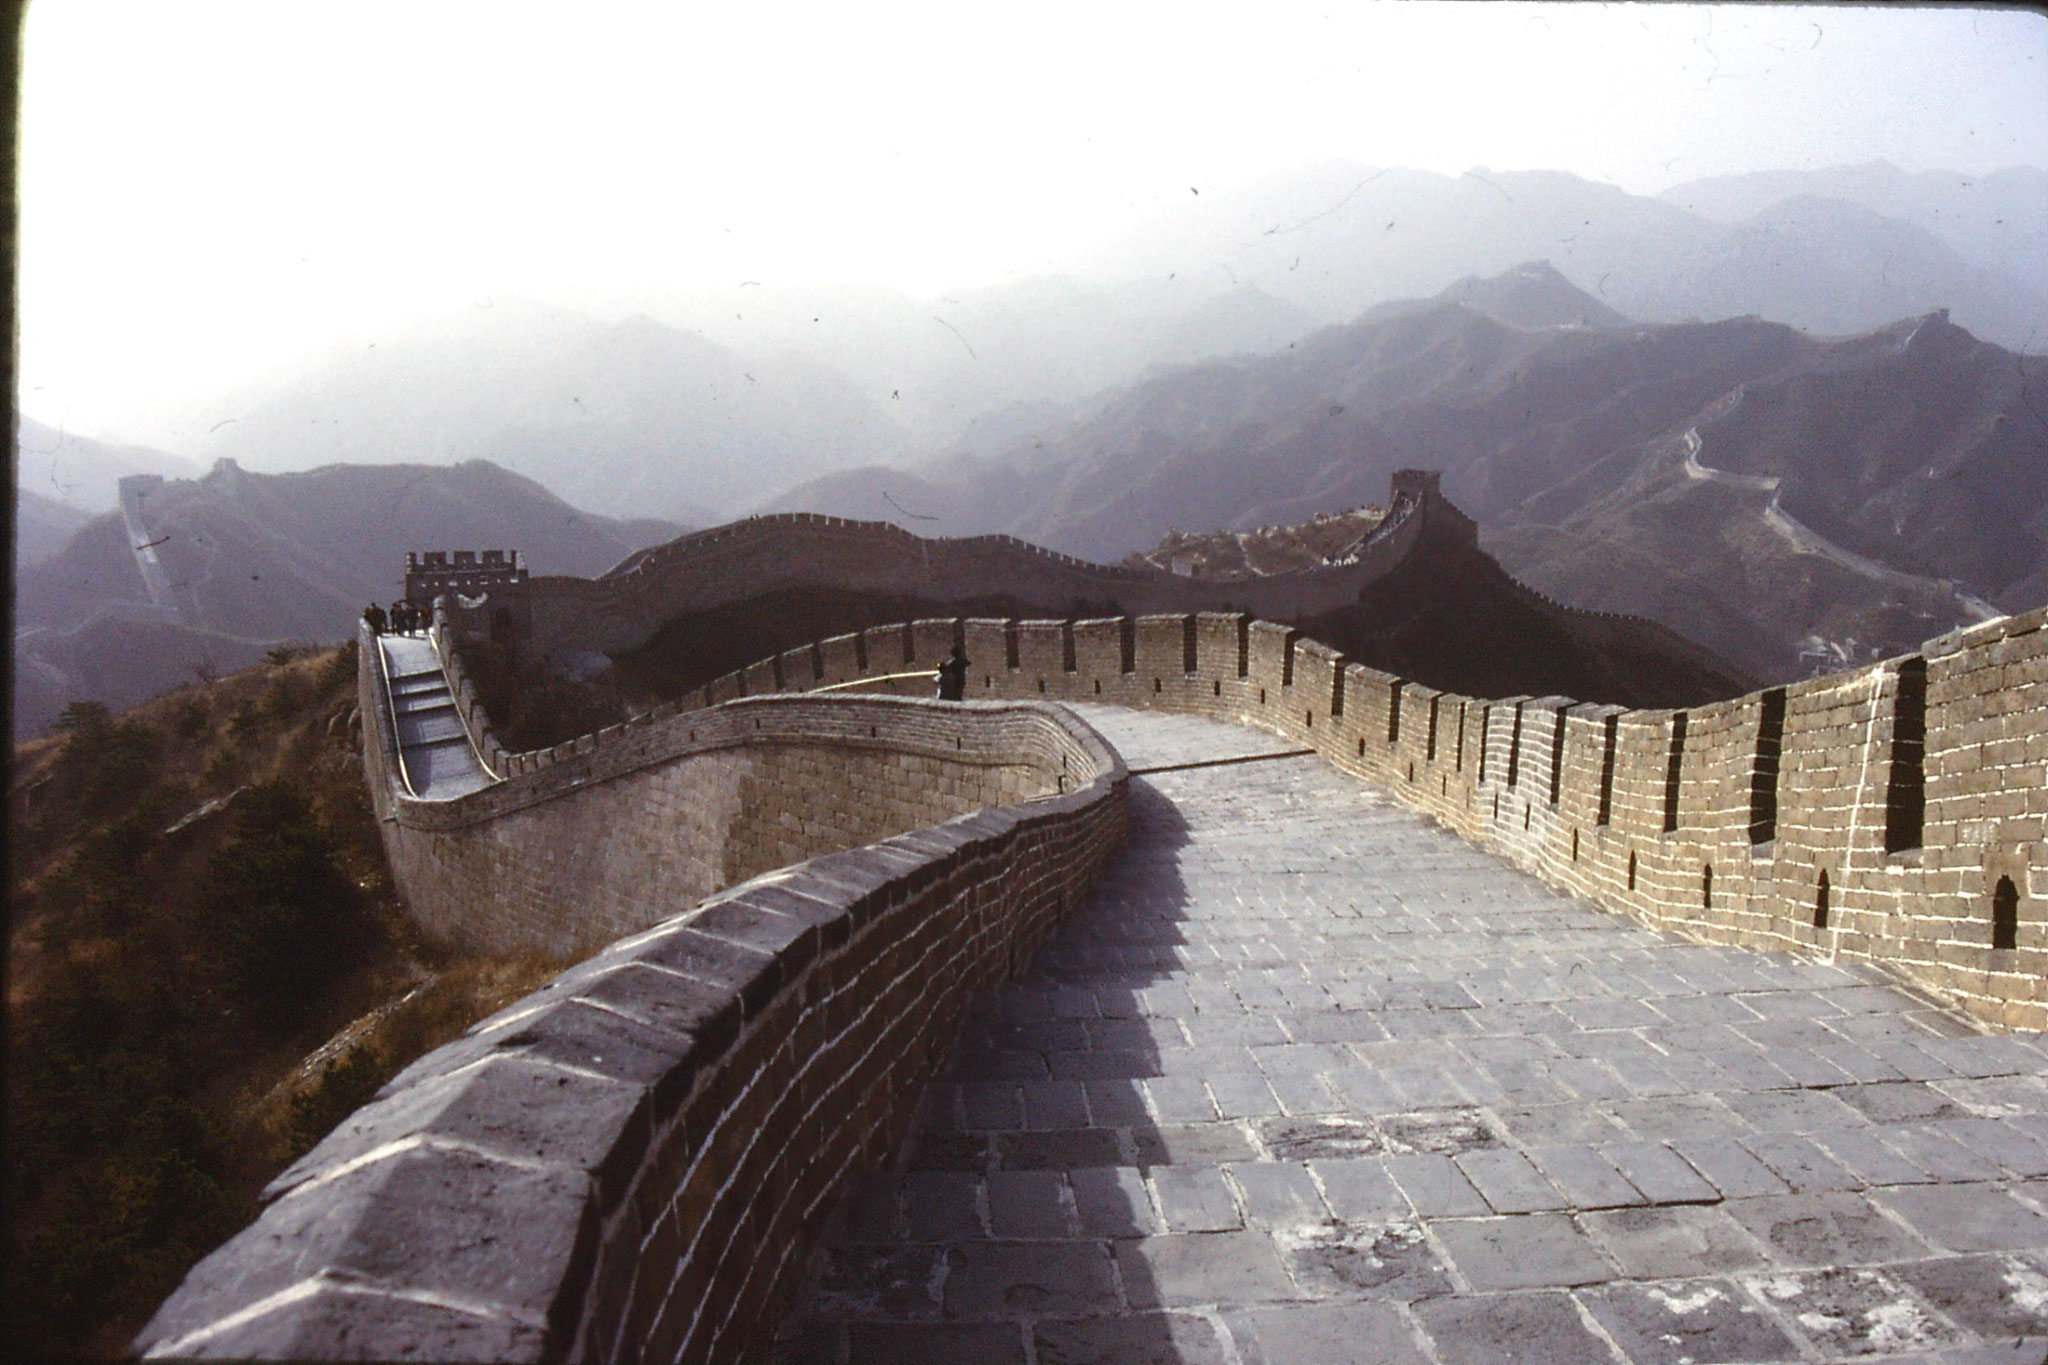 12/11/1988: 4: Great Wall at Badaling